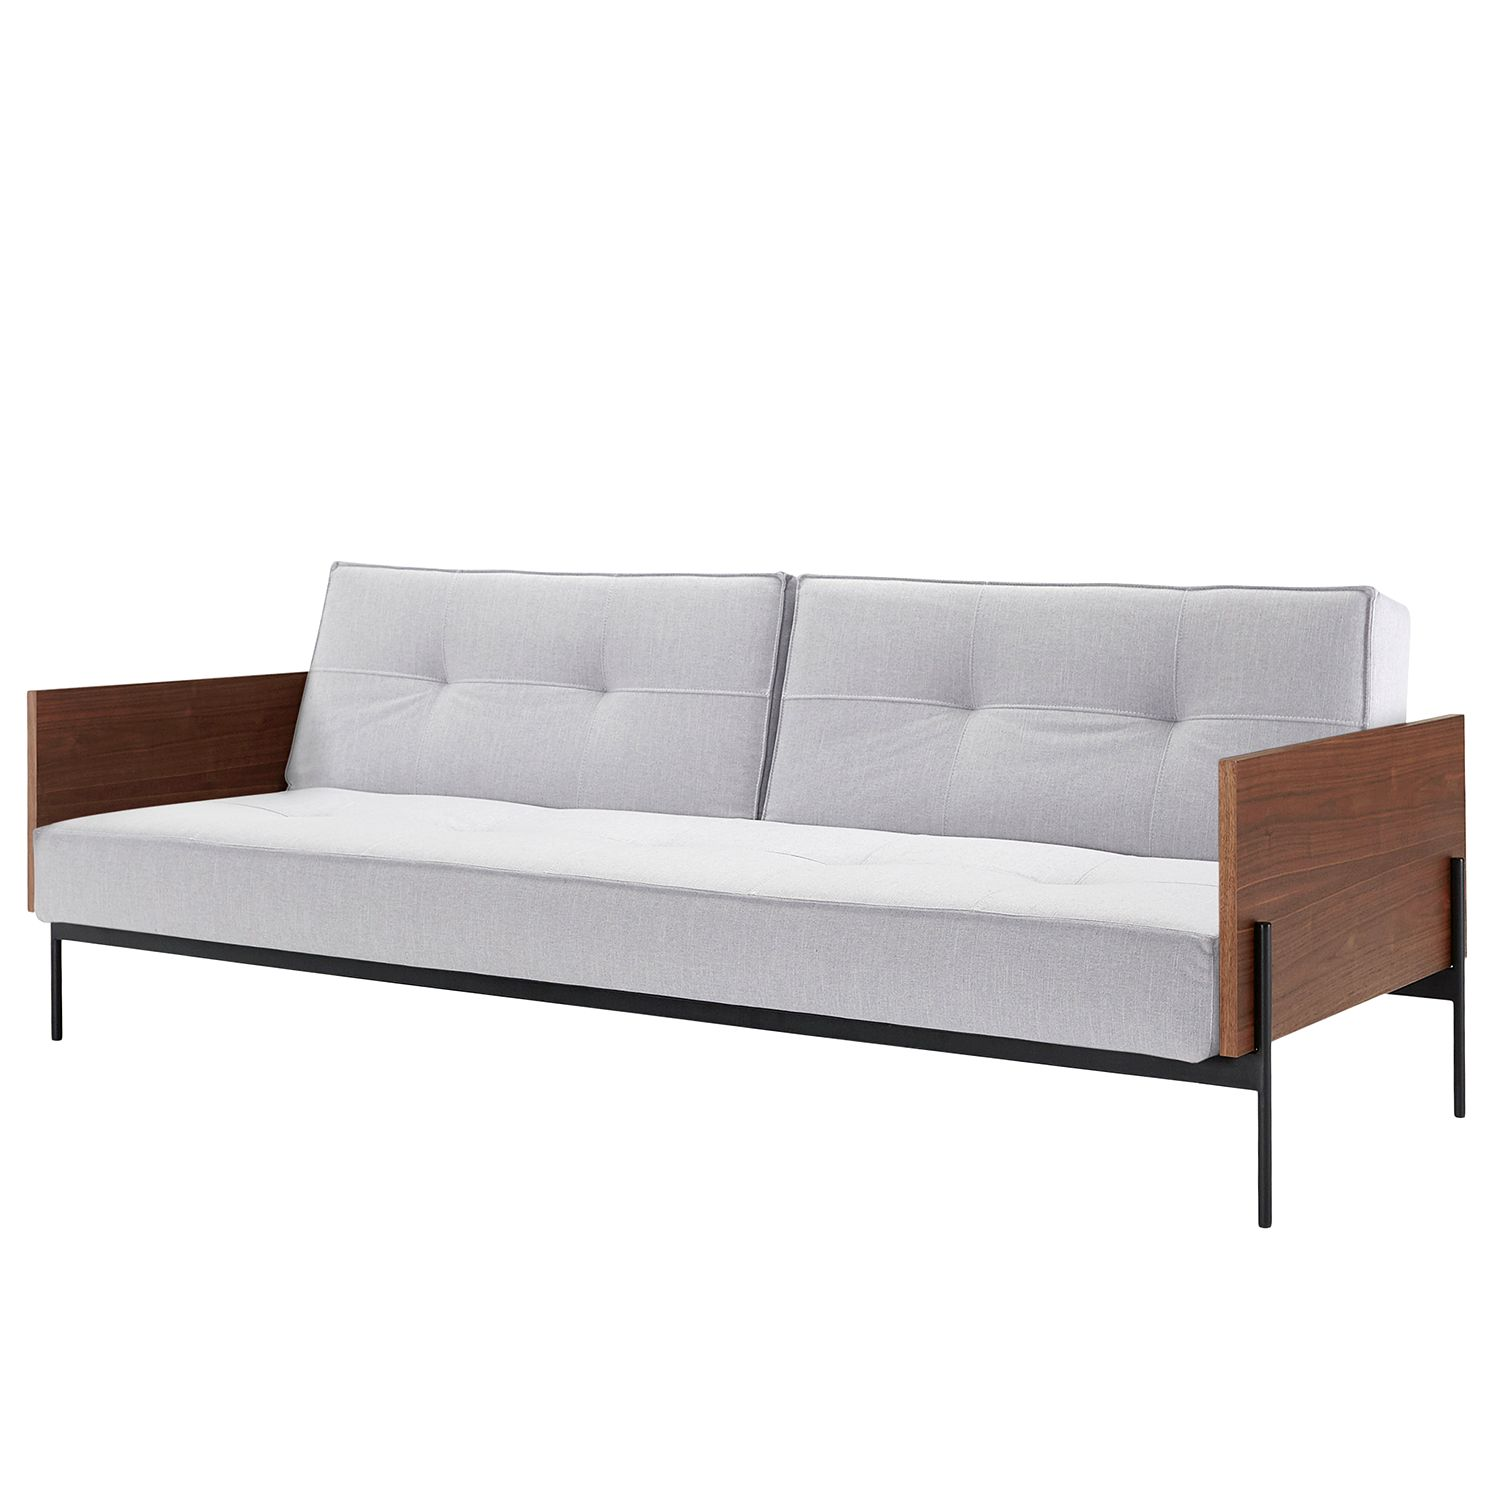 home24 Schlafsofa Splitback Lauge